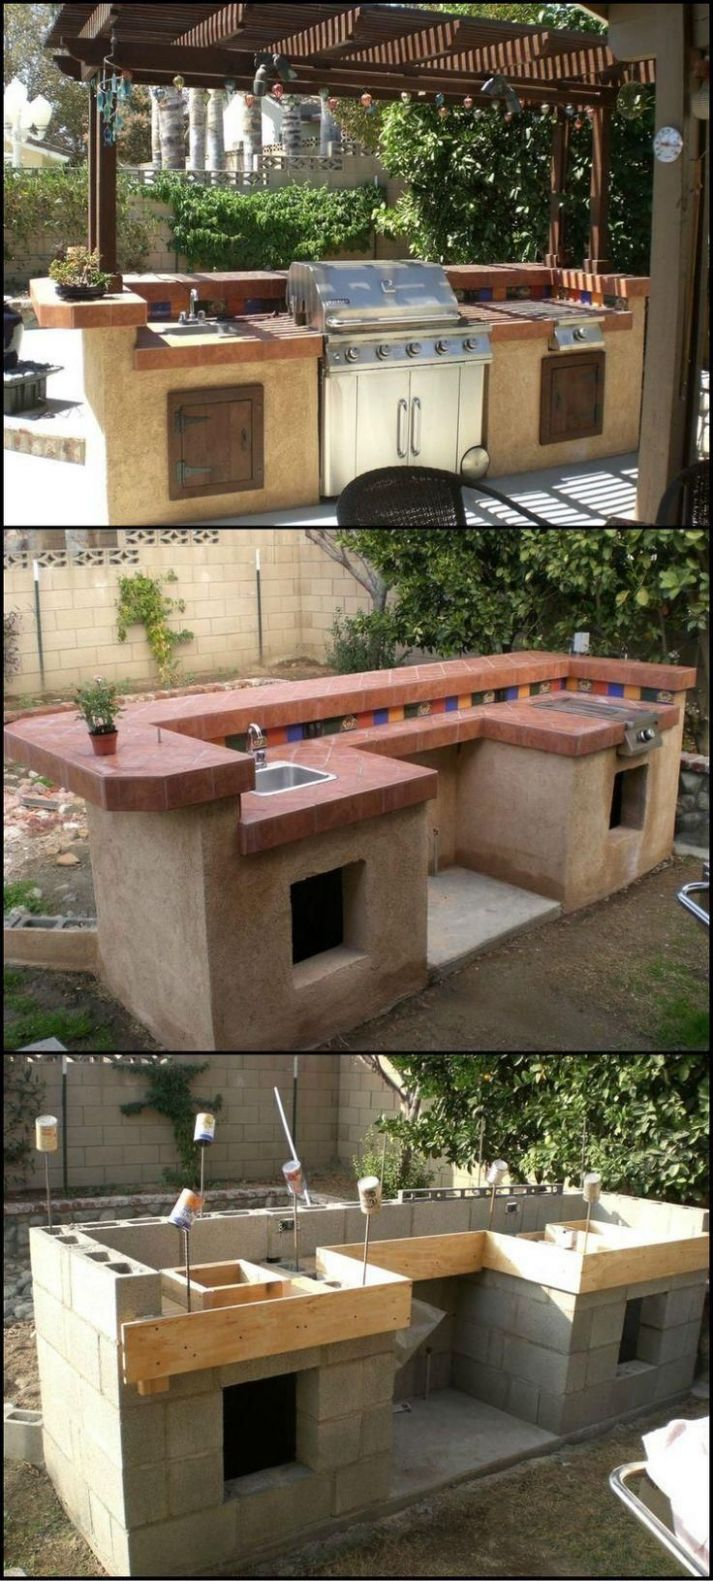 12 Plans to Make a Simple Outdoor Kitchen | Build outdoor kitchen ...